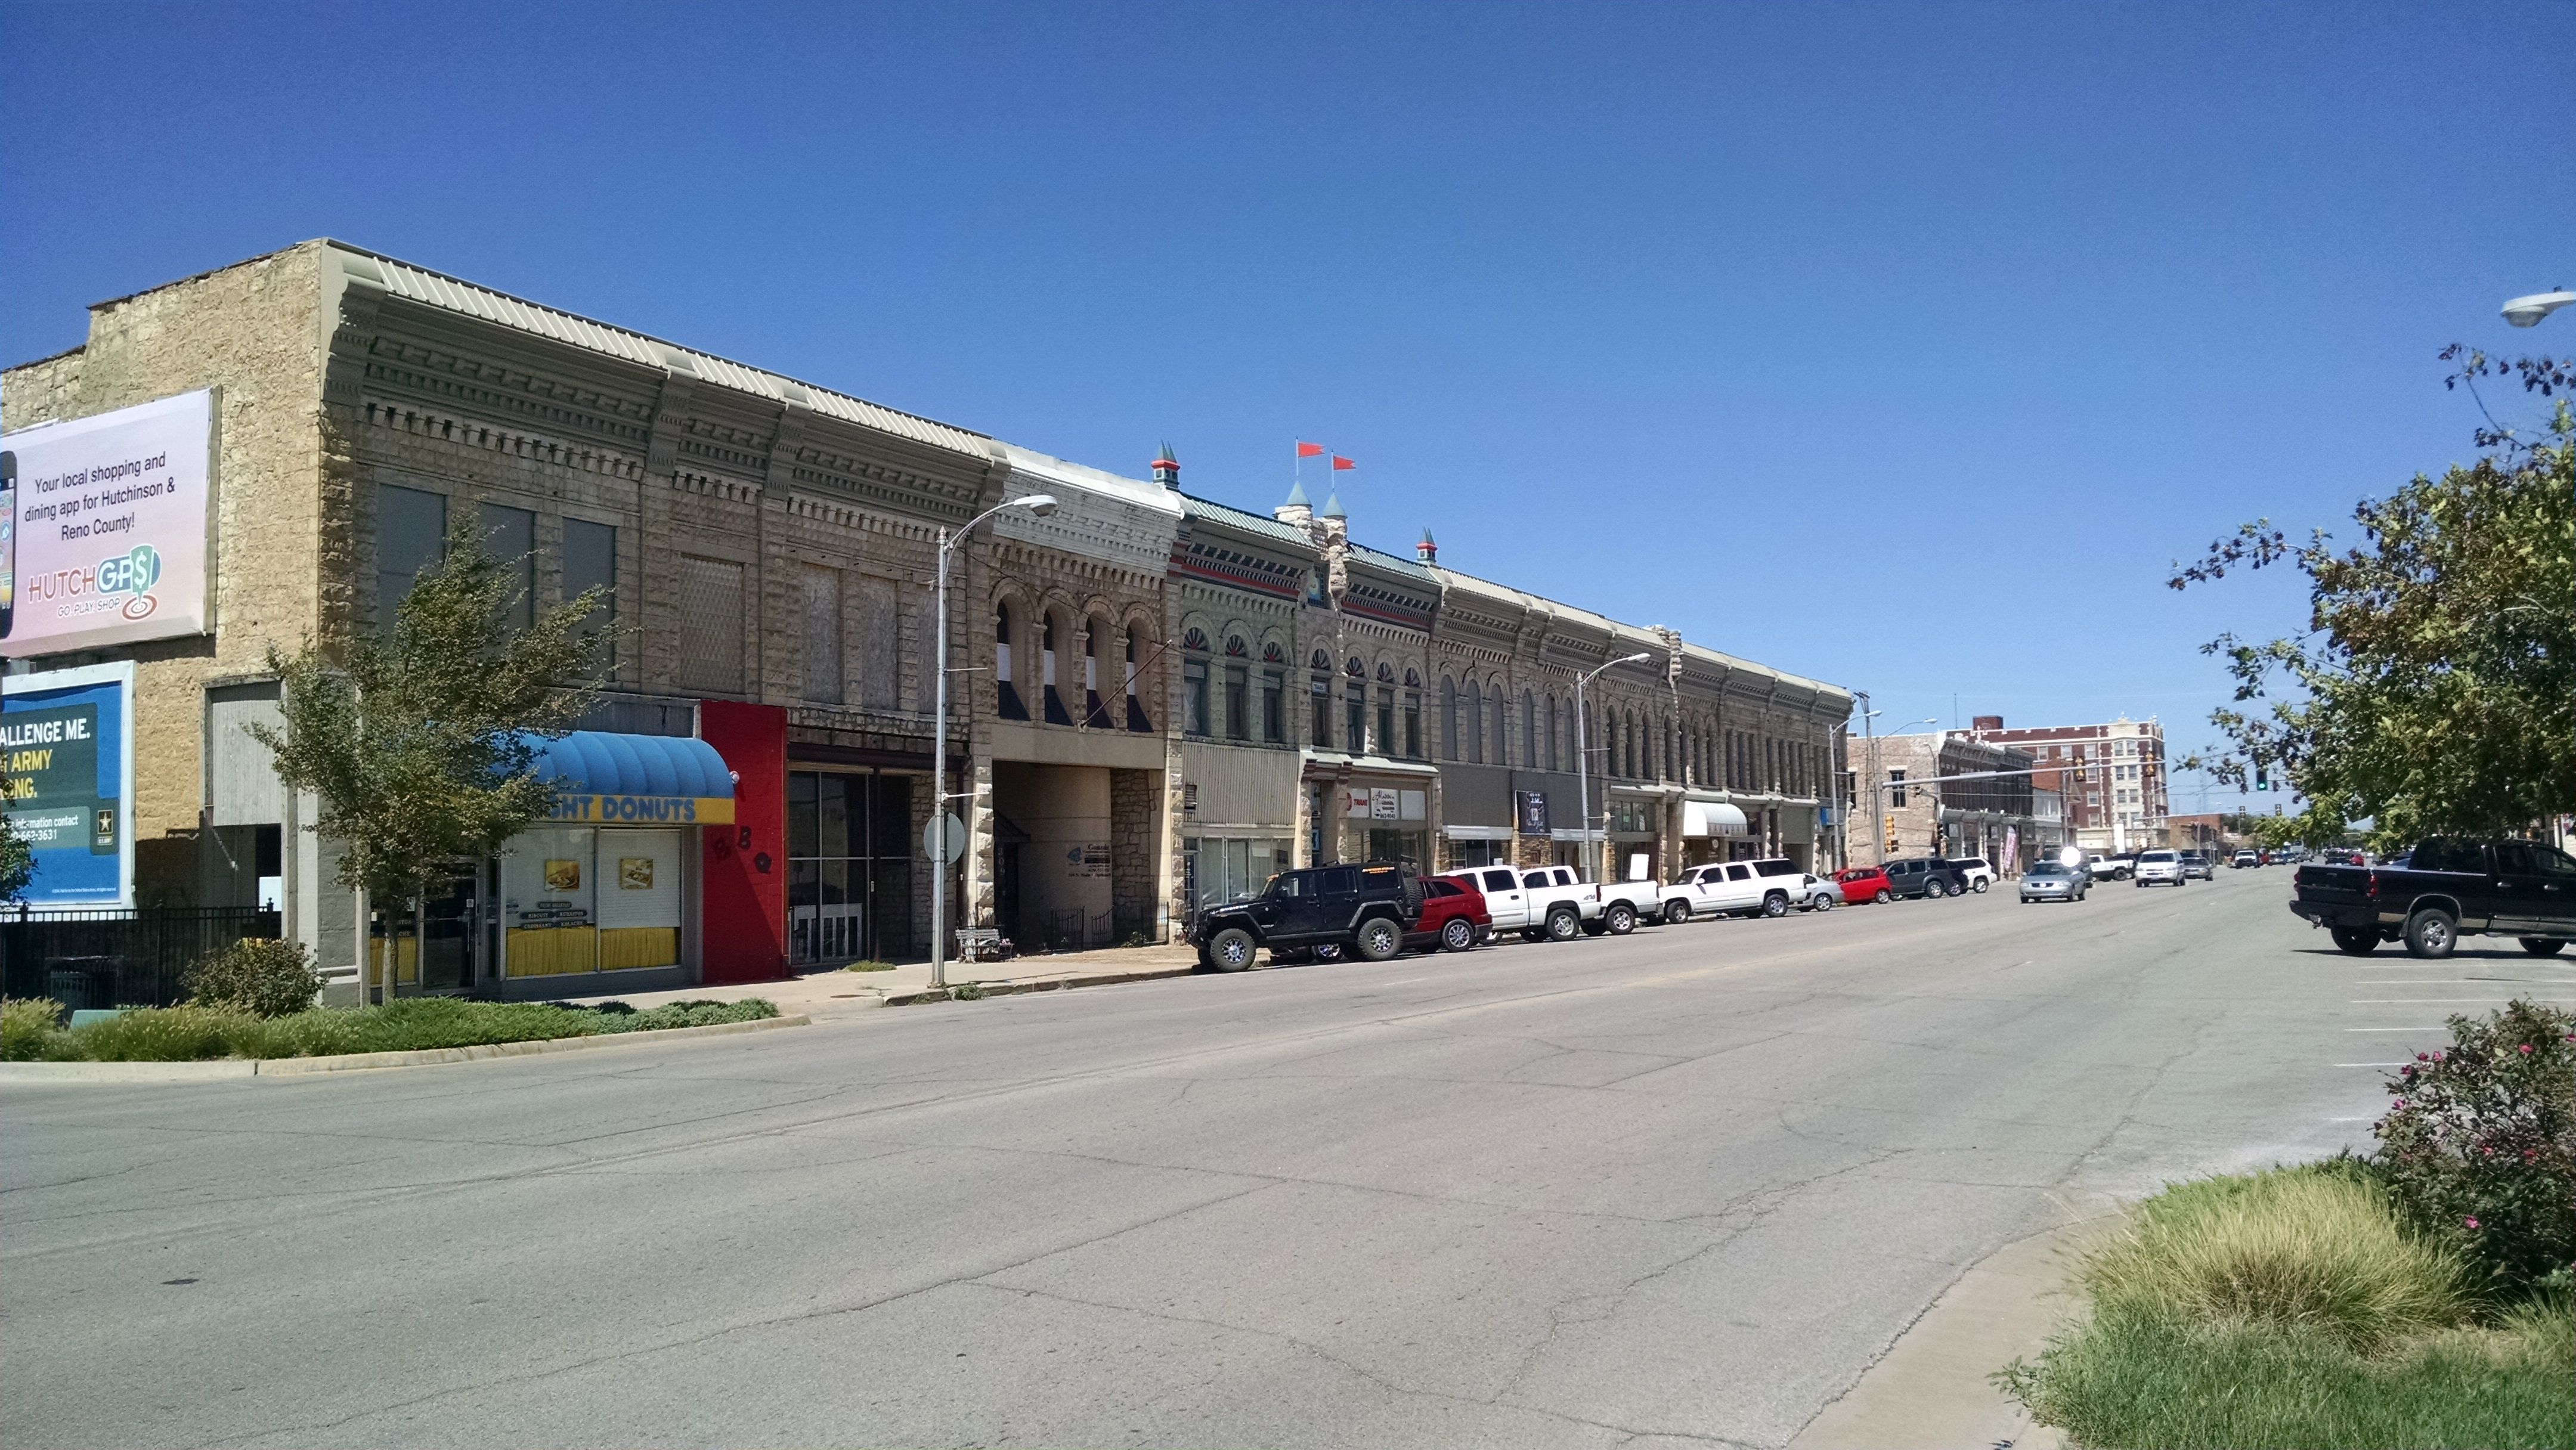 Kansas reno county turon - National Register Of Historic Places Listings In Reno County Kansas Wikiwand